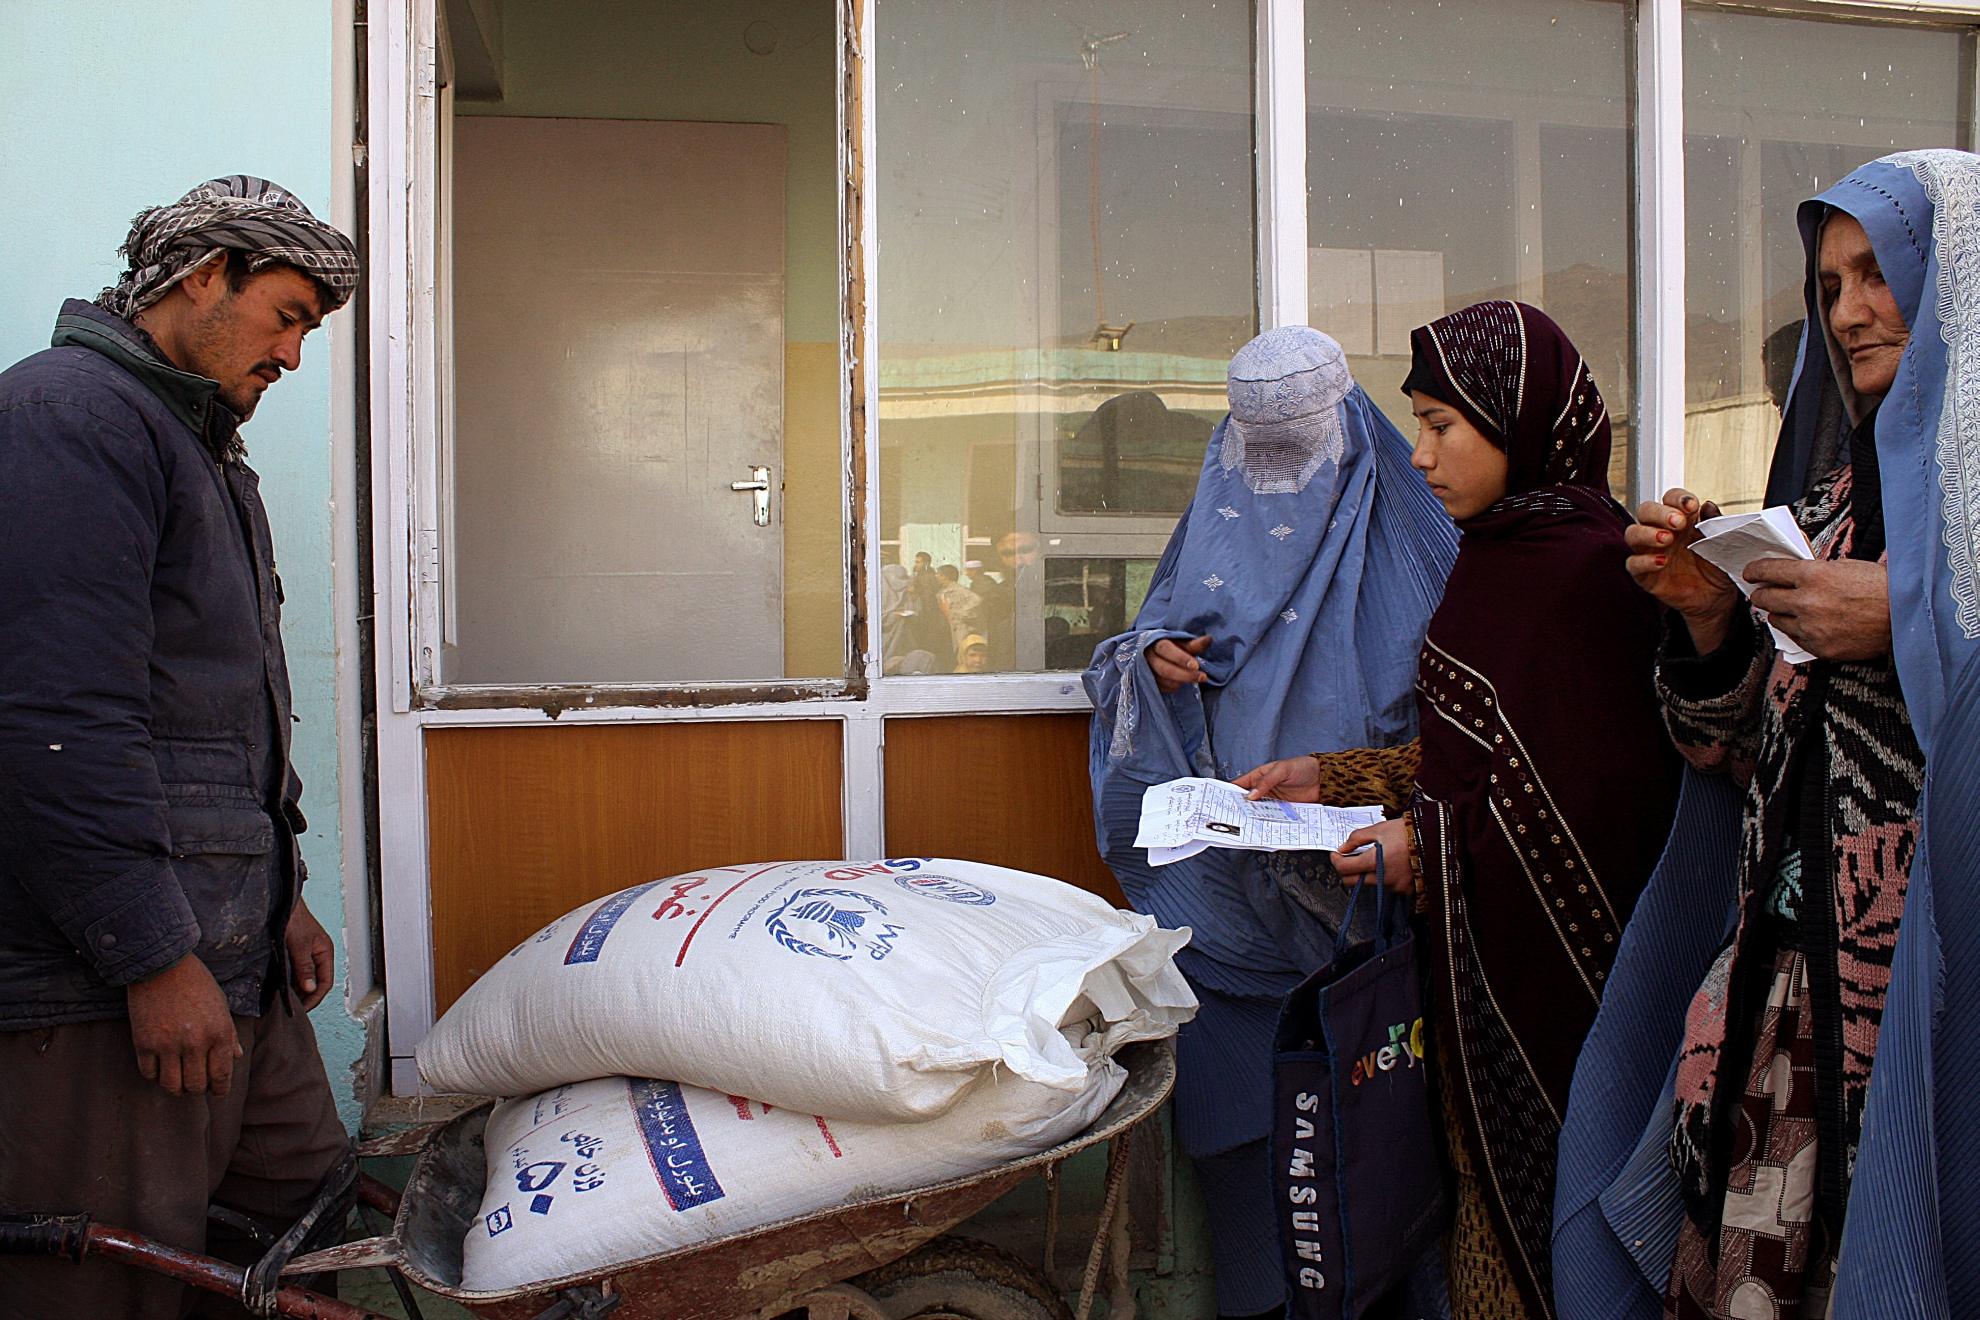 Women in Kabul receiving food rations from The World Food Programme. Photo: UN Photo/UNAMA